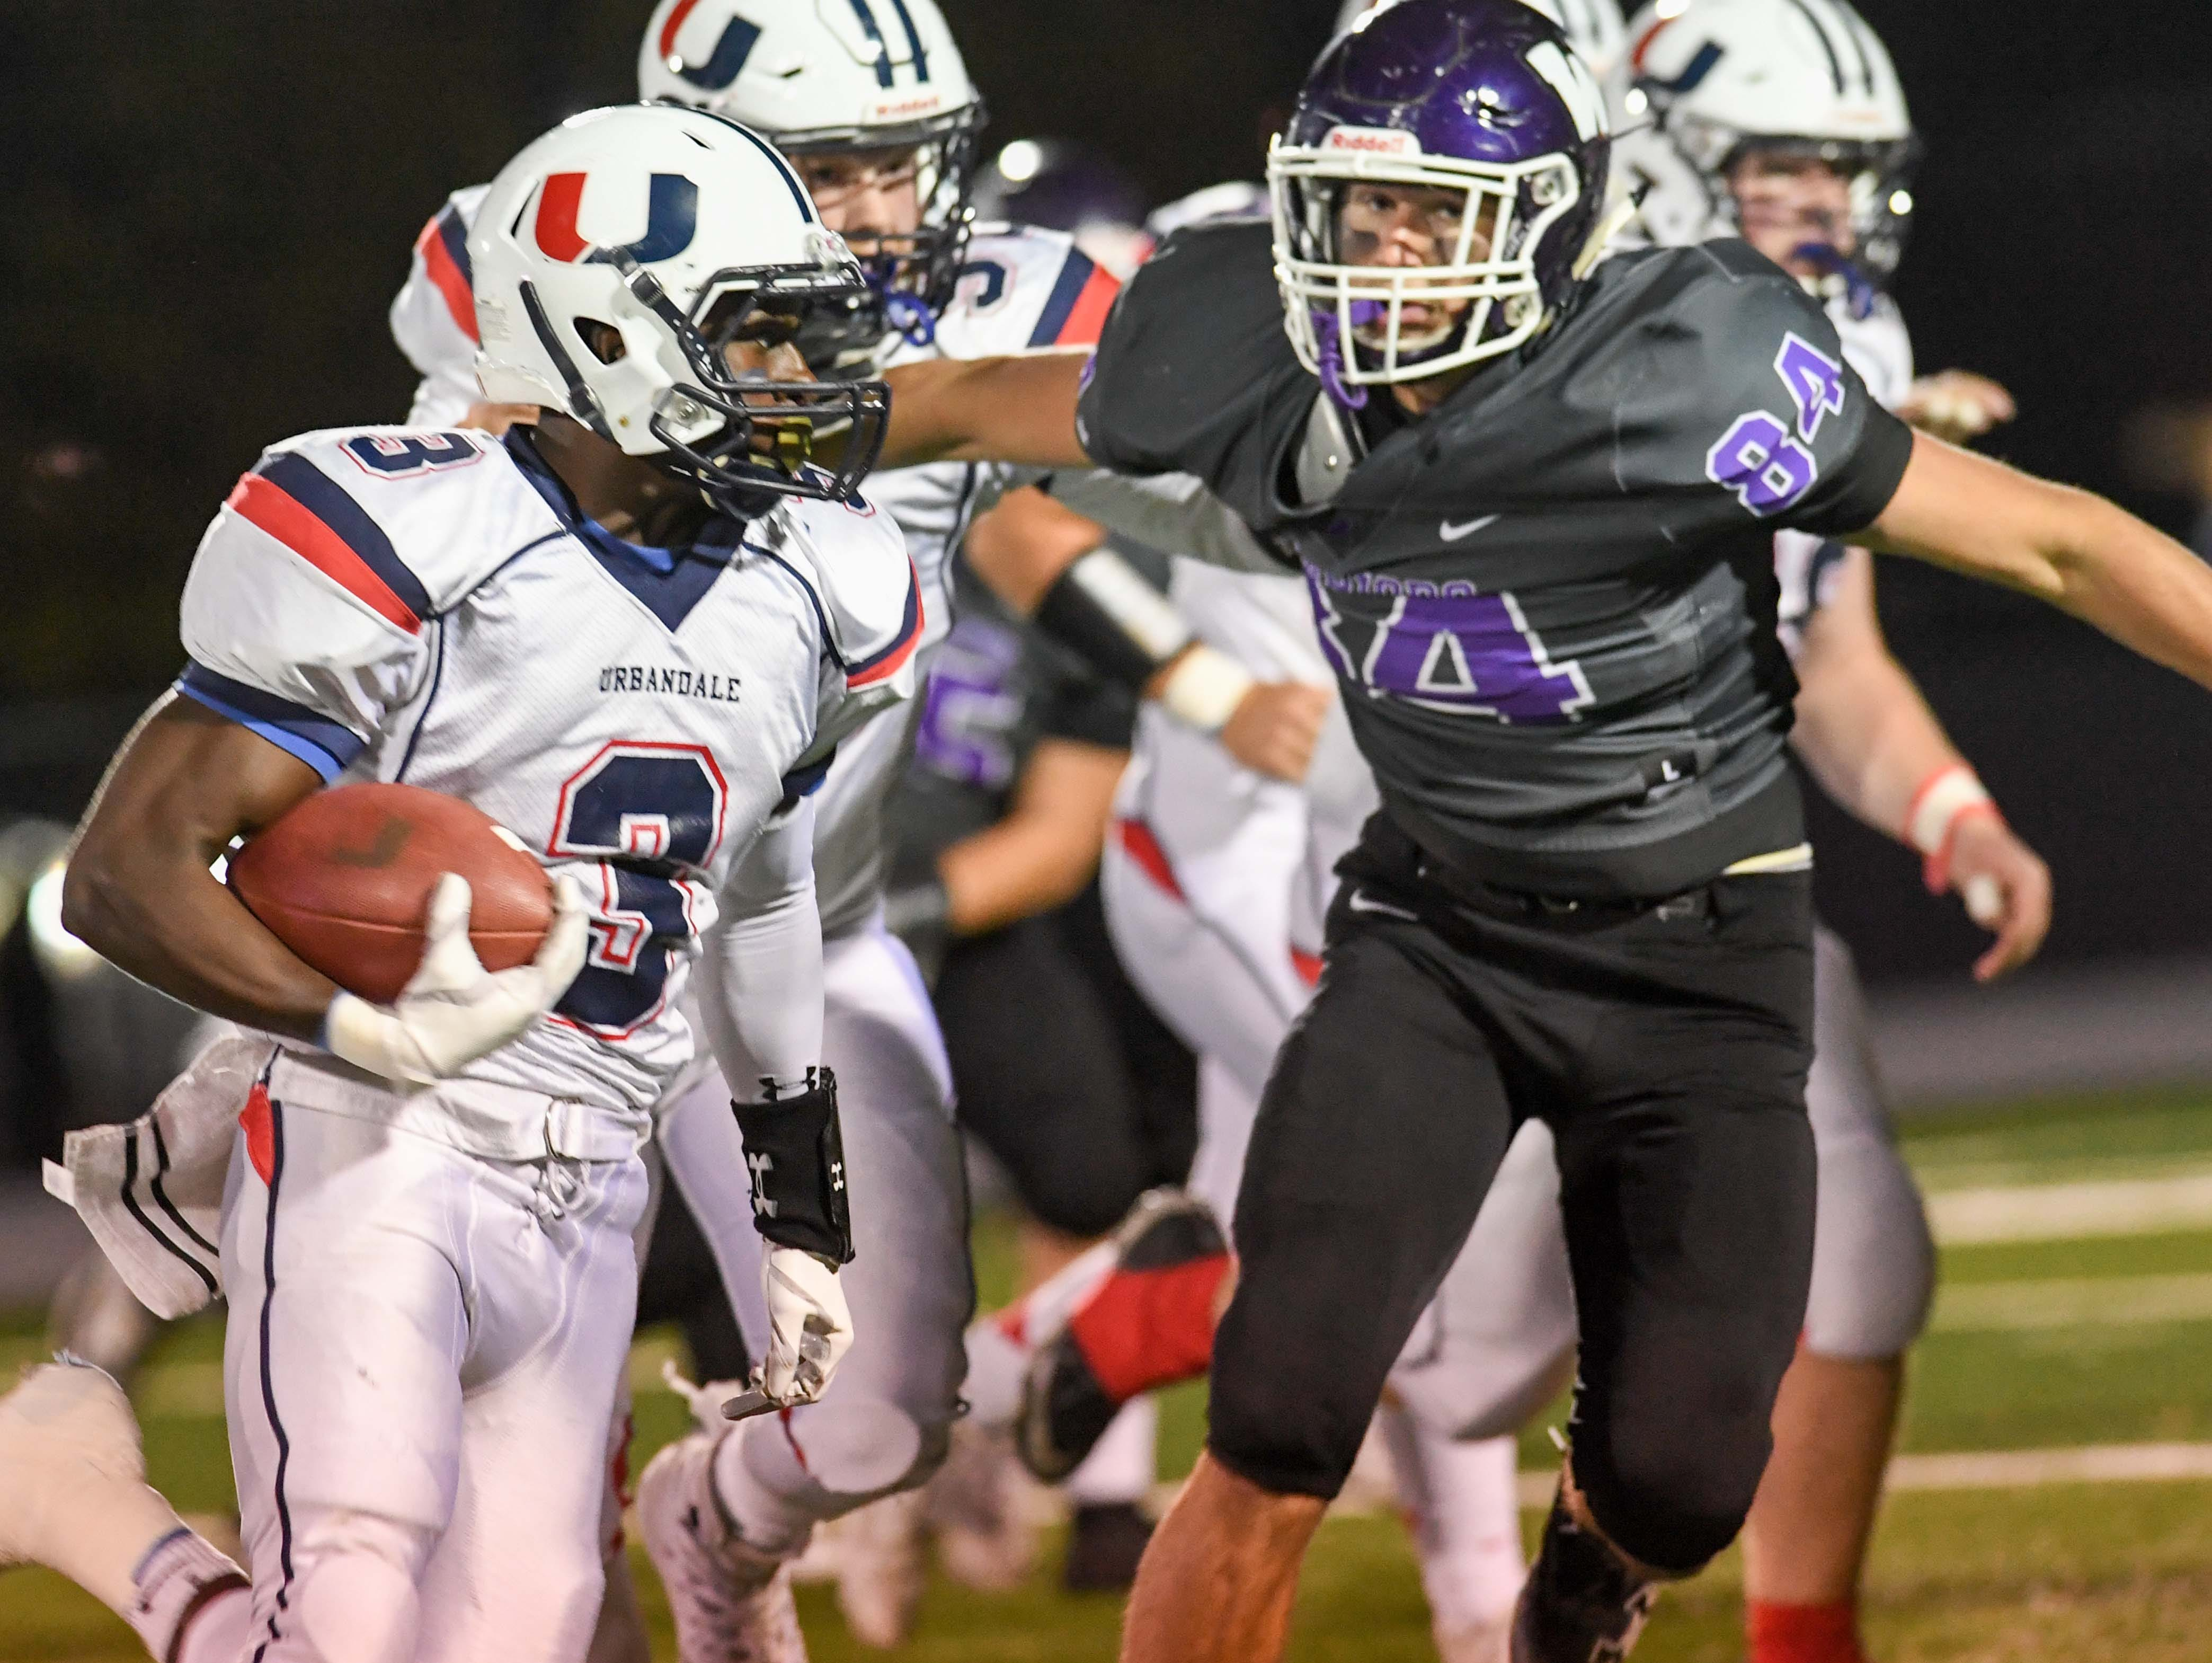 Urbandale's Harrison Waylee (3) looks for running room as  Waukee's Caleb Paulus (84) defends on Friday, Oct. 26, 2018 during a playoff game between the Waukee Warriors and the Urbandale J-Hawks at Waukee High School.